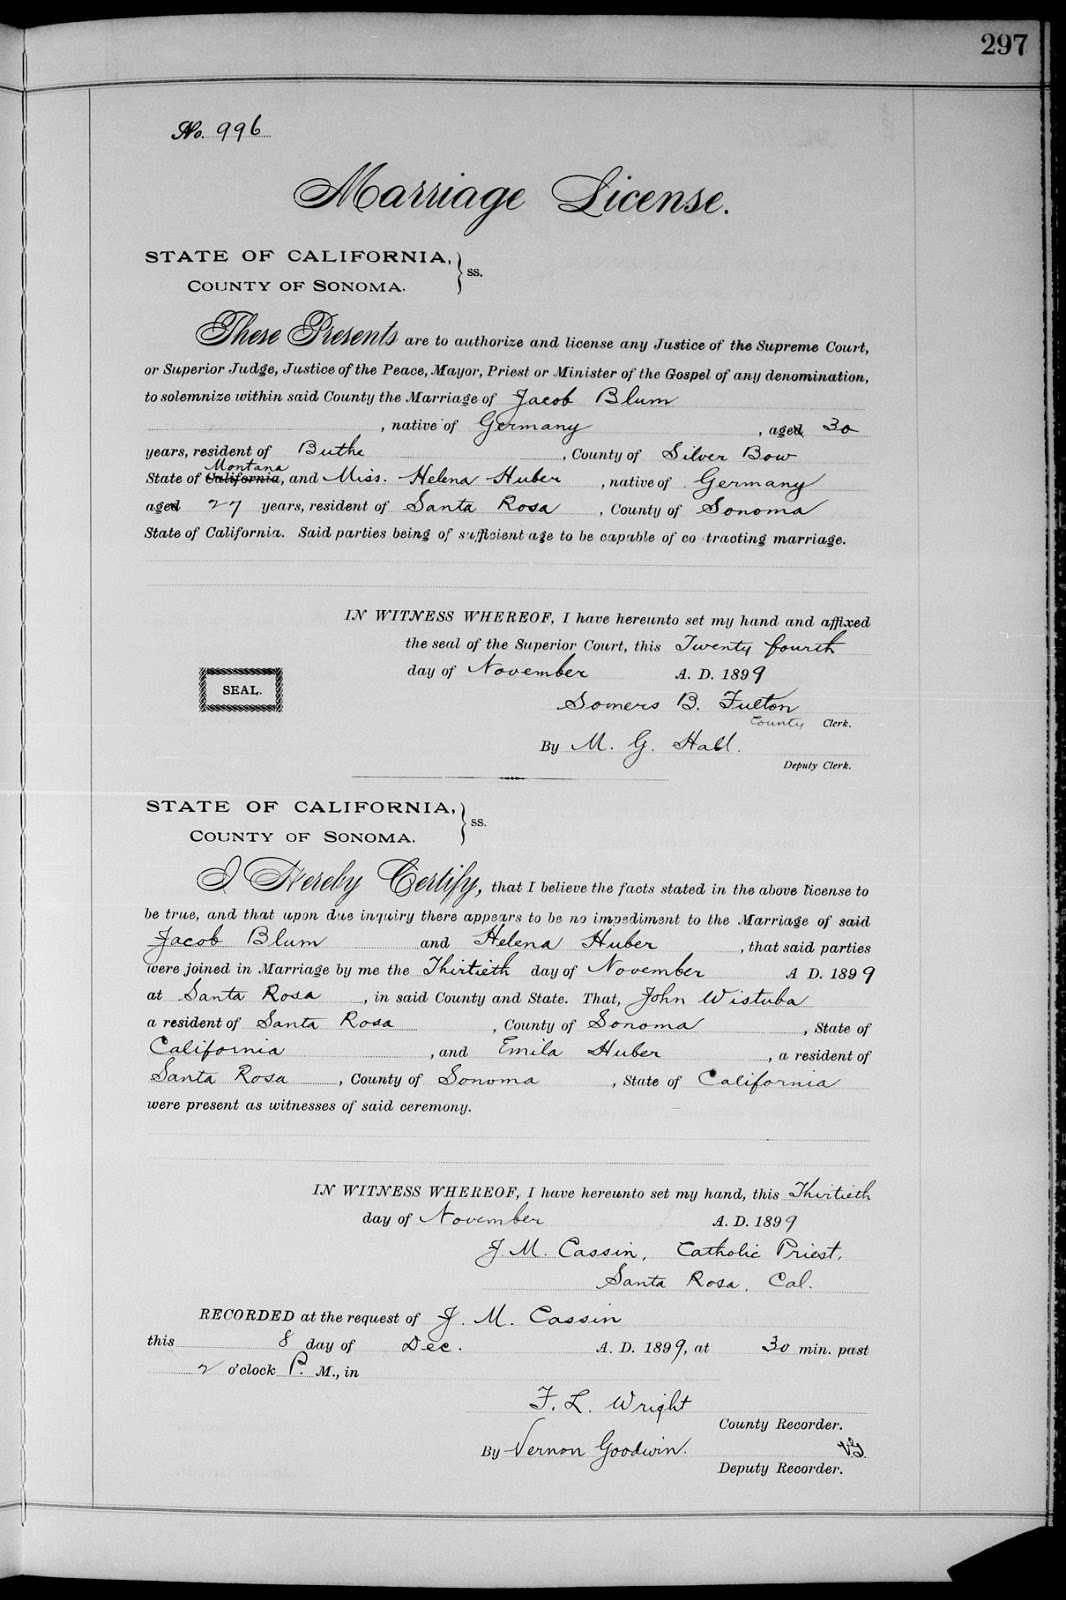 Nick gombashs genealogy blog familysearch find of the day familysearch find of the day marriage license of jacob blum helena huber aiddatafo Image collections